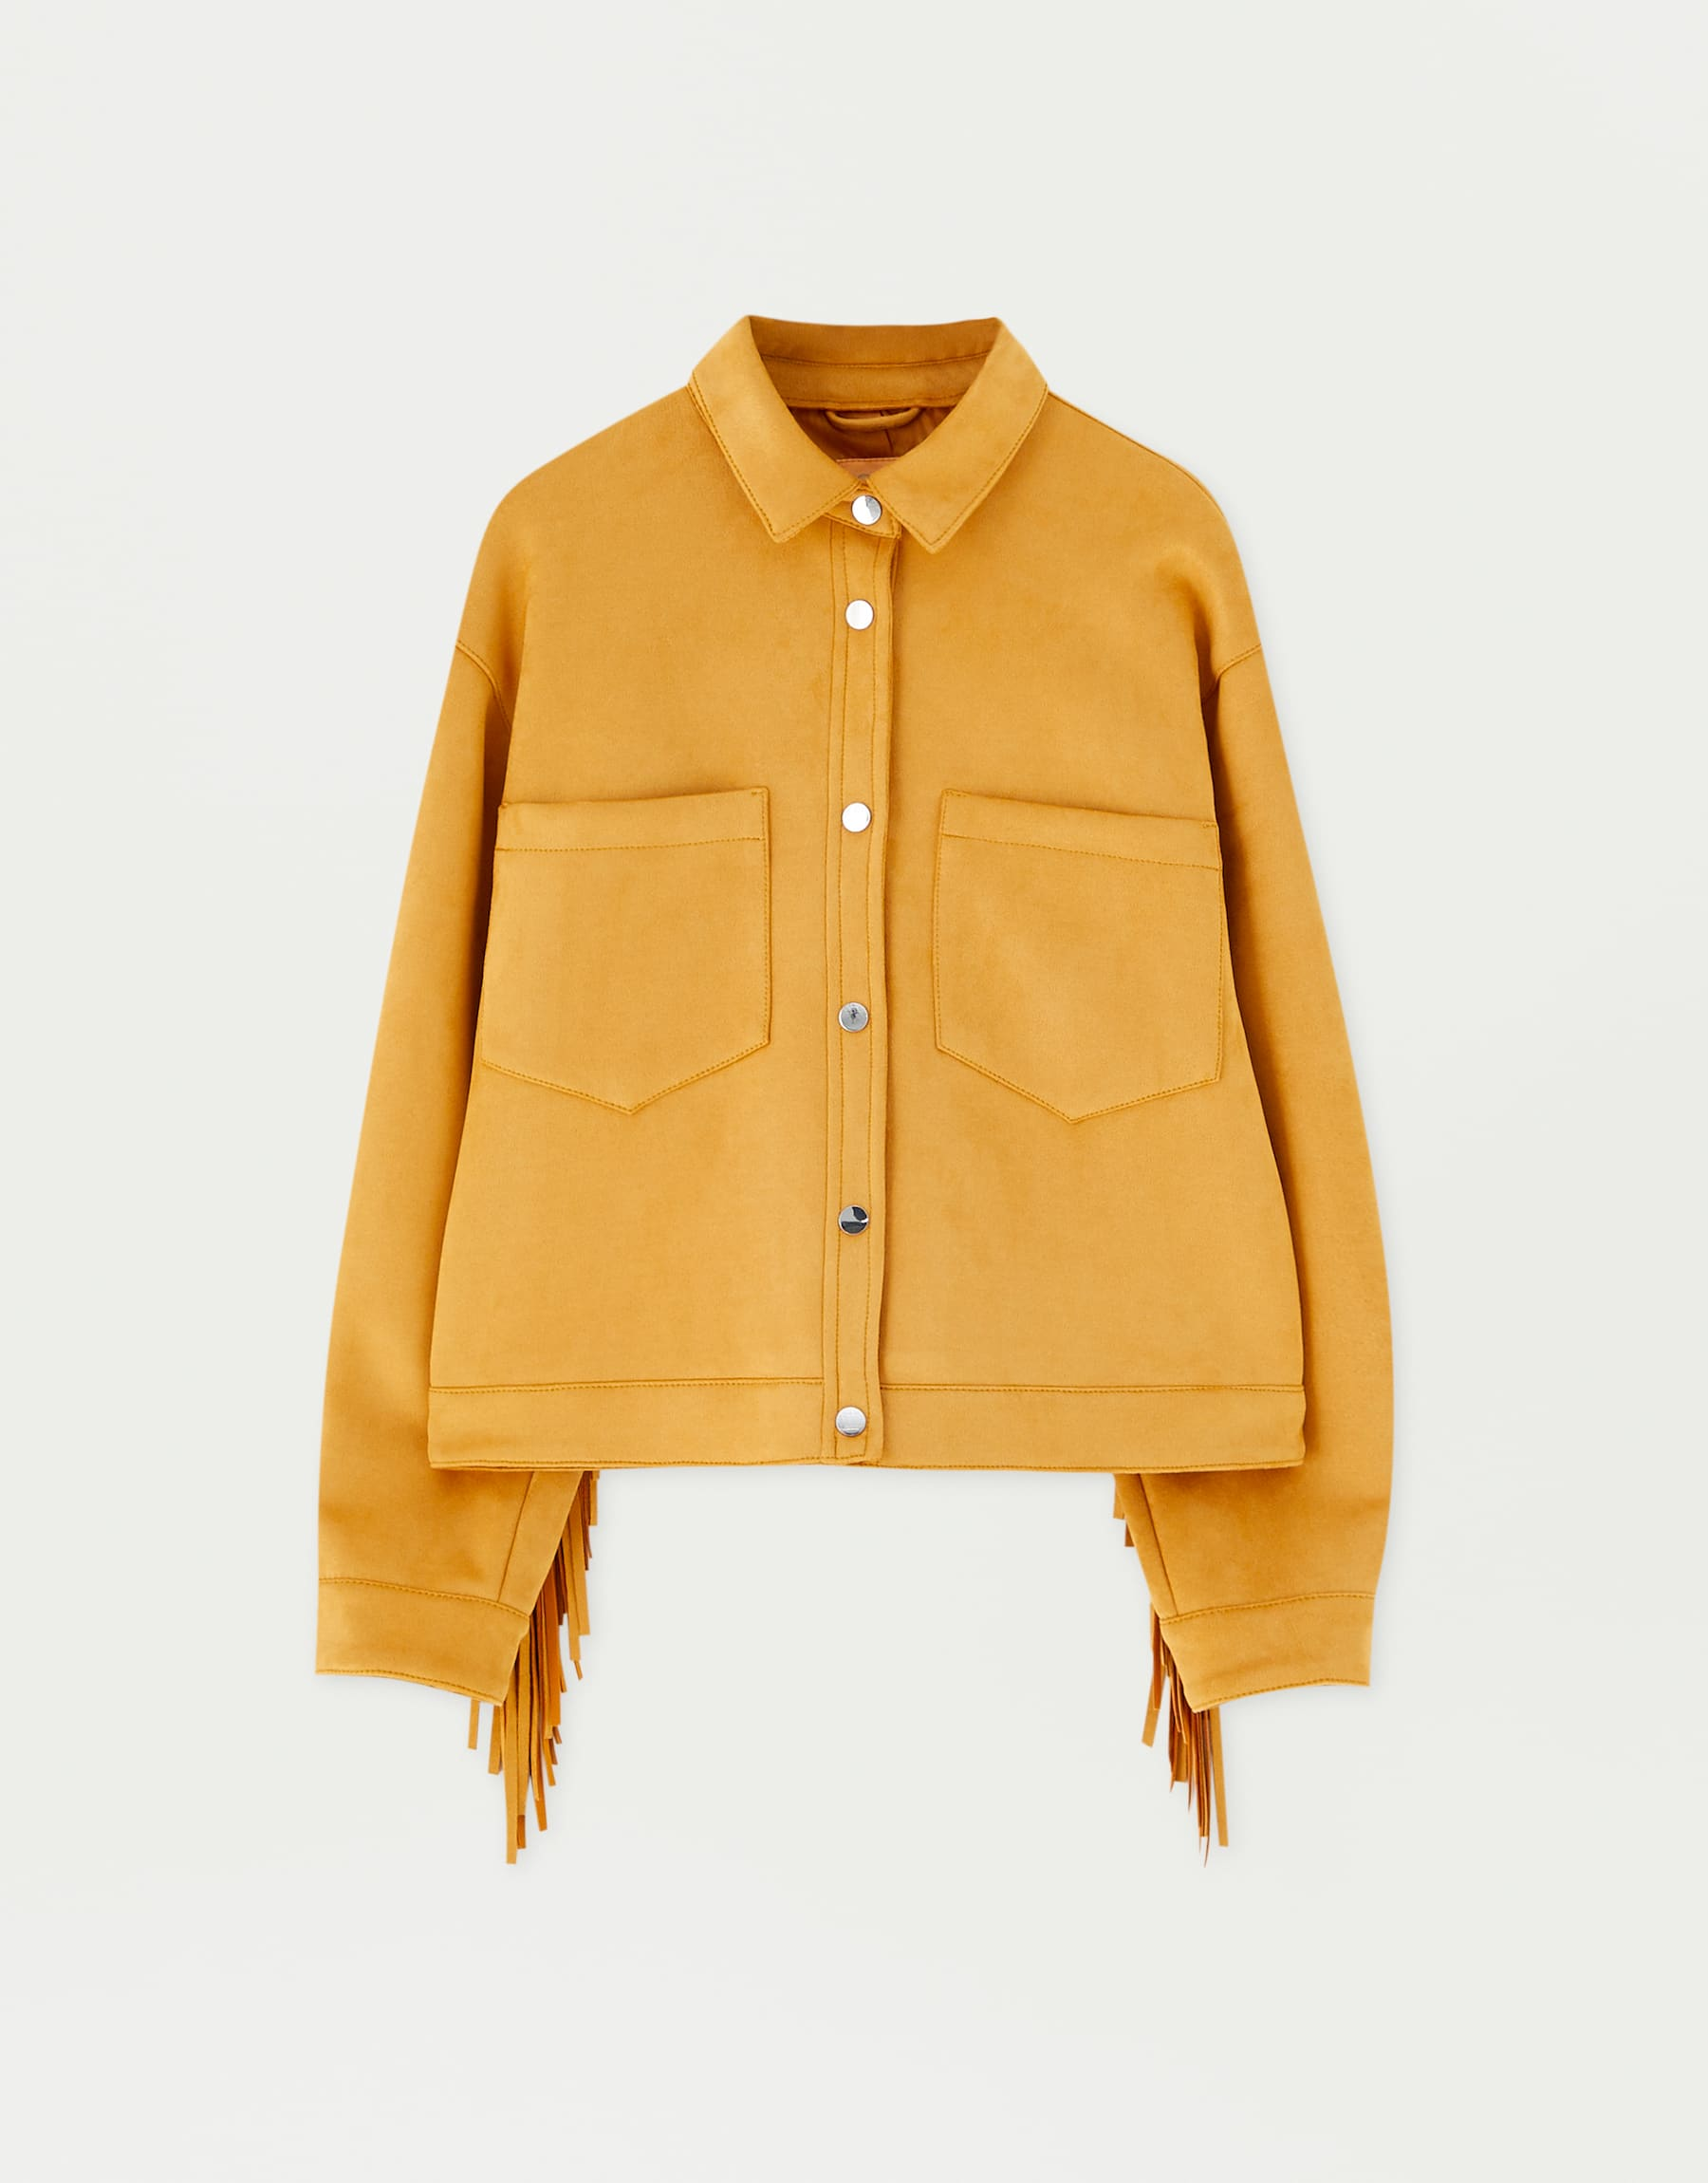 Sadie Sink By Pull&Bear Fringed Faux Suede Jacket, $89.90